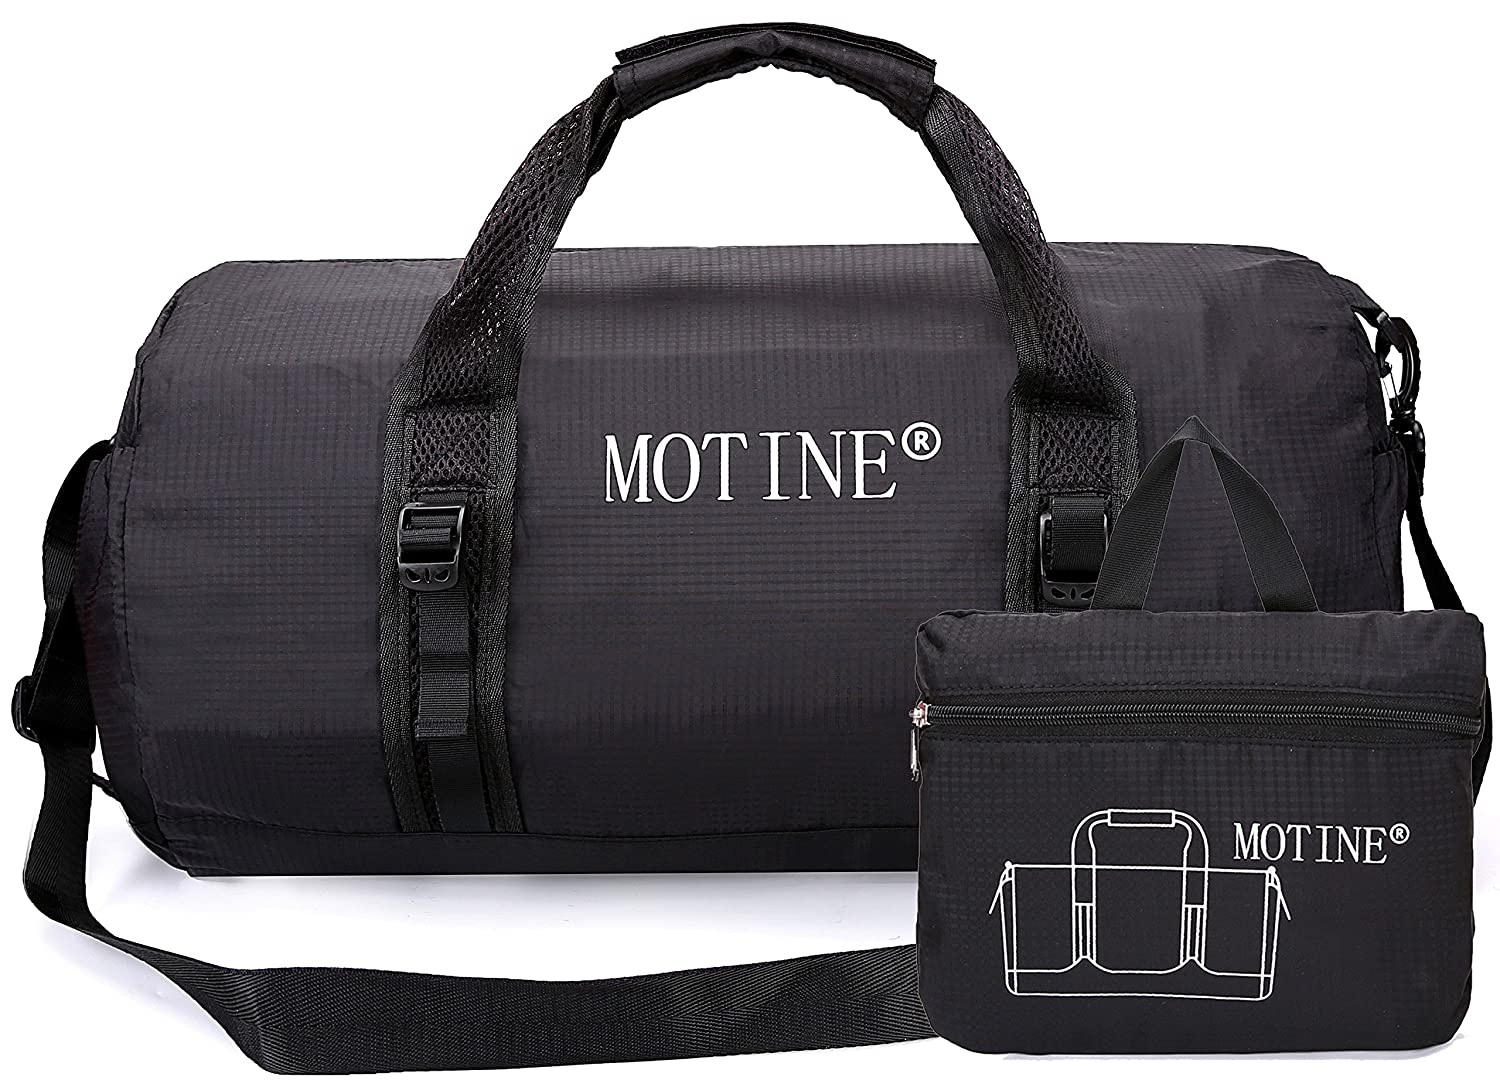 6d5f6c861 MOTINE Foldable Waterproof Travel Luggage Duffle Bag For Sports, Gym,  Vacation